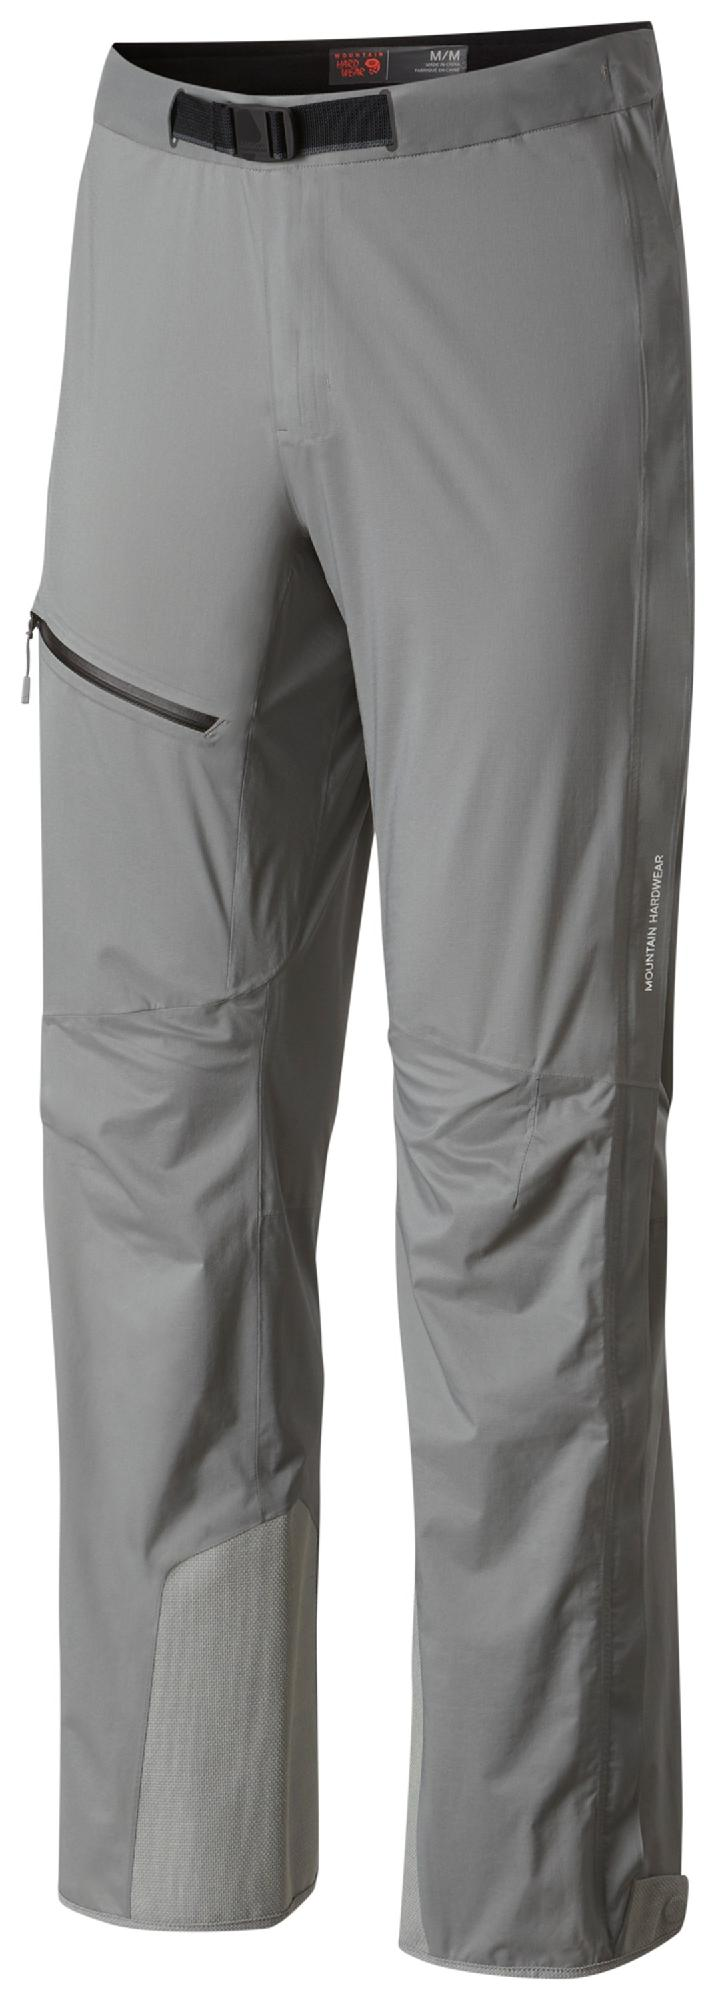 Mountain Hardwear Quasar Lite II Pants - Men's